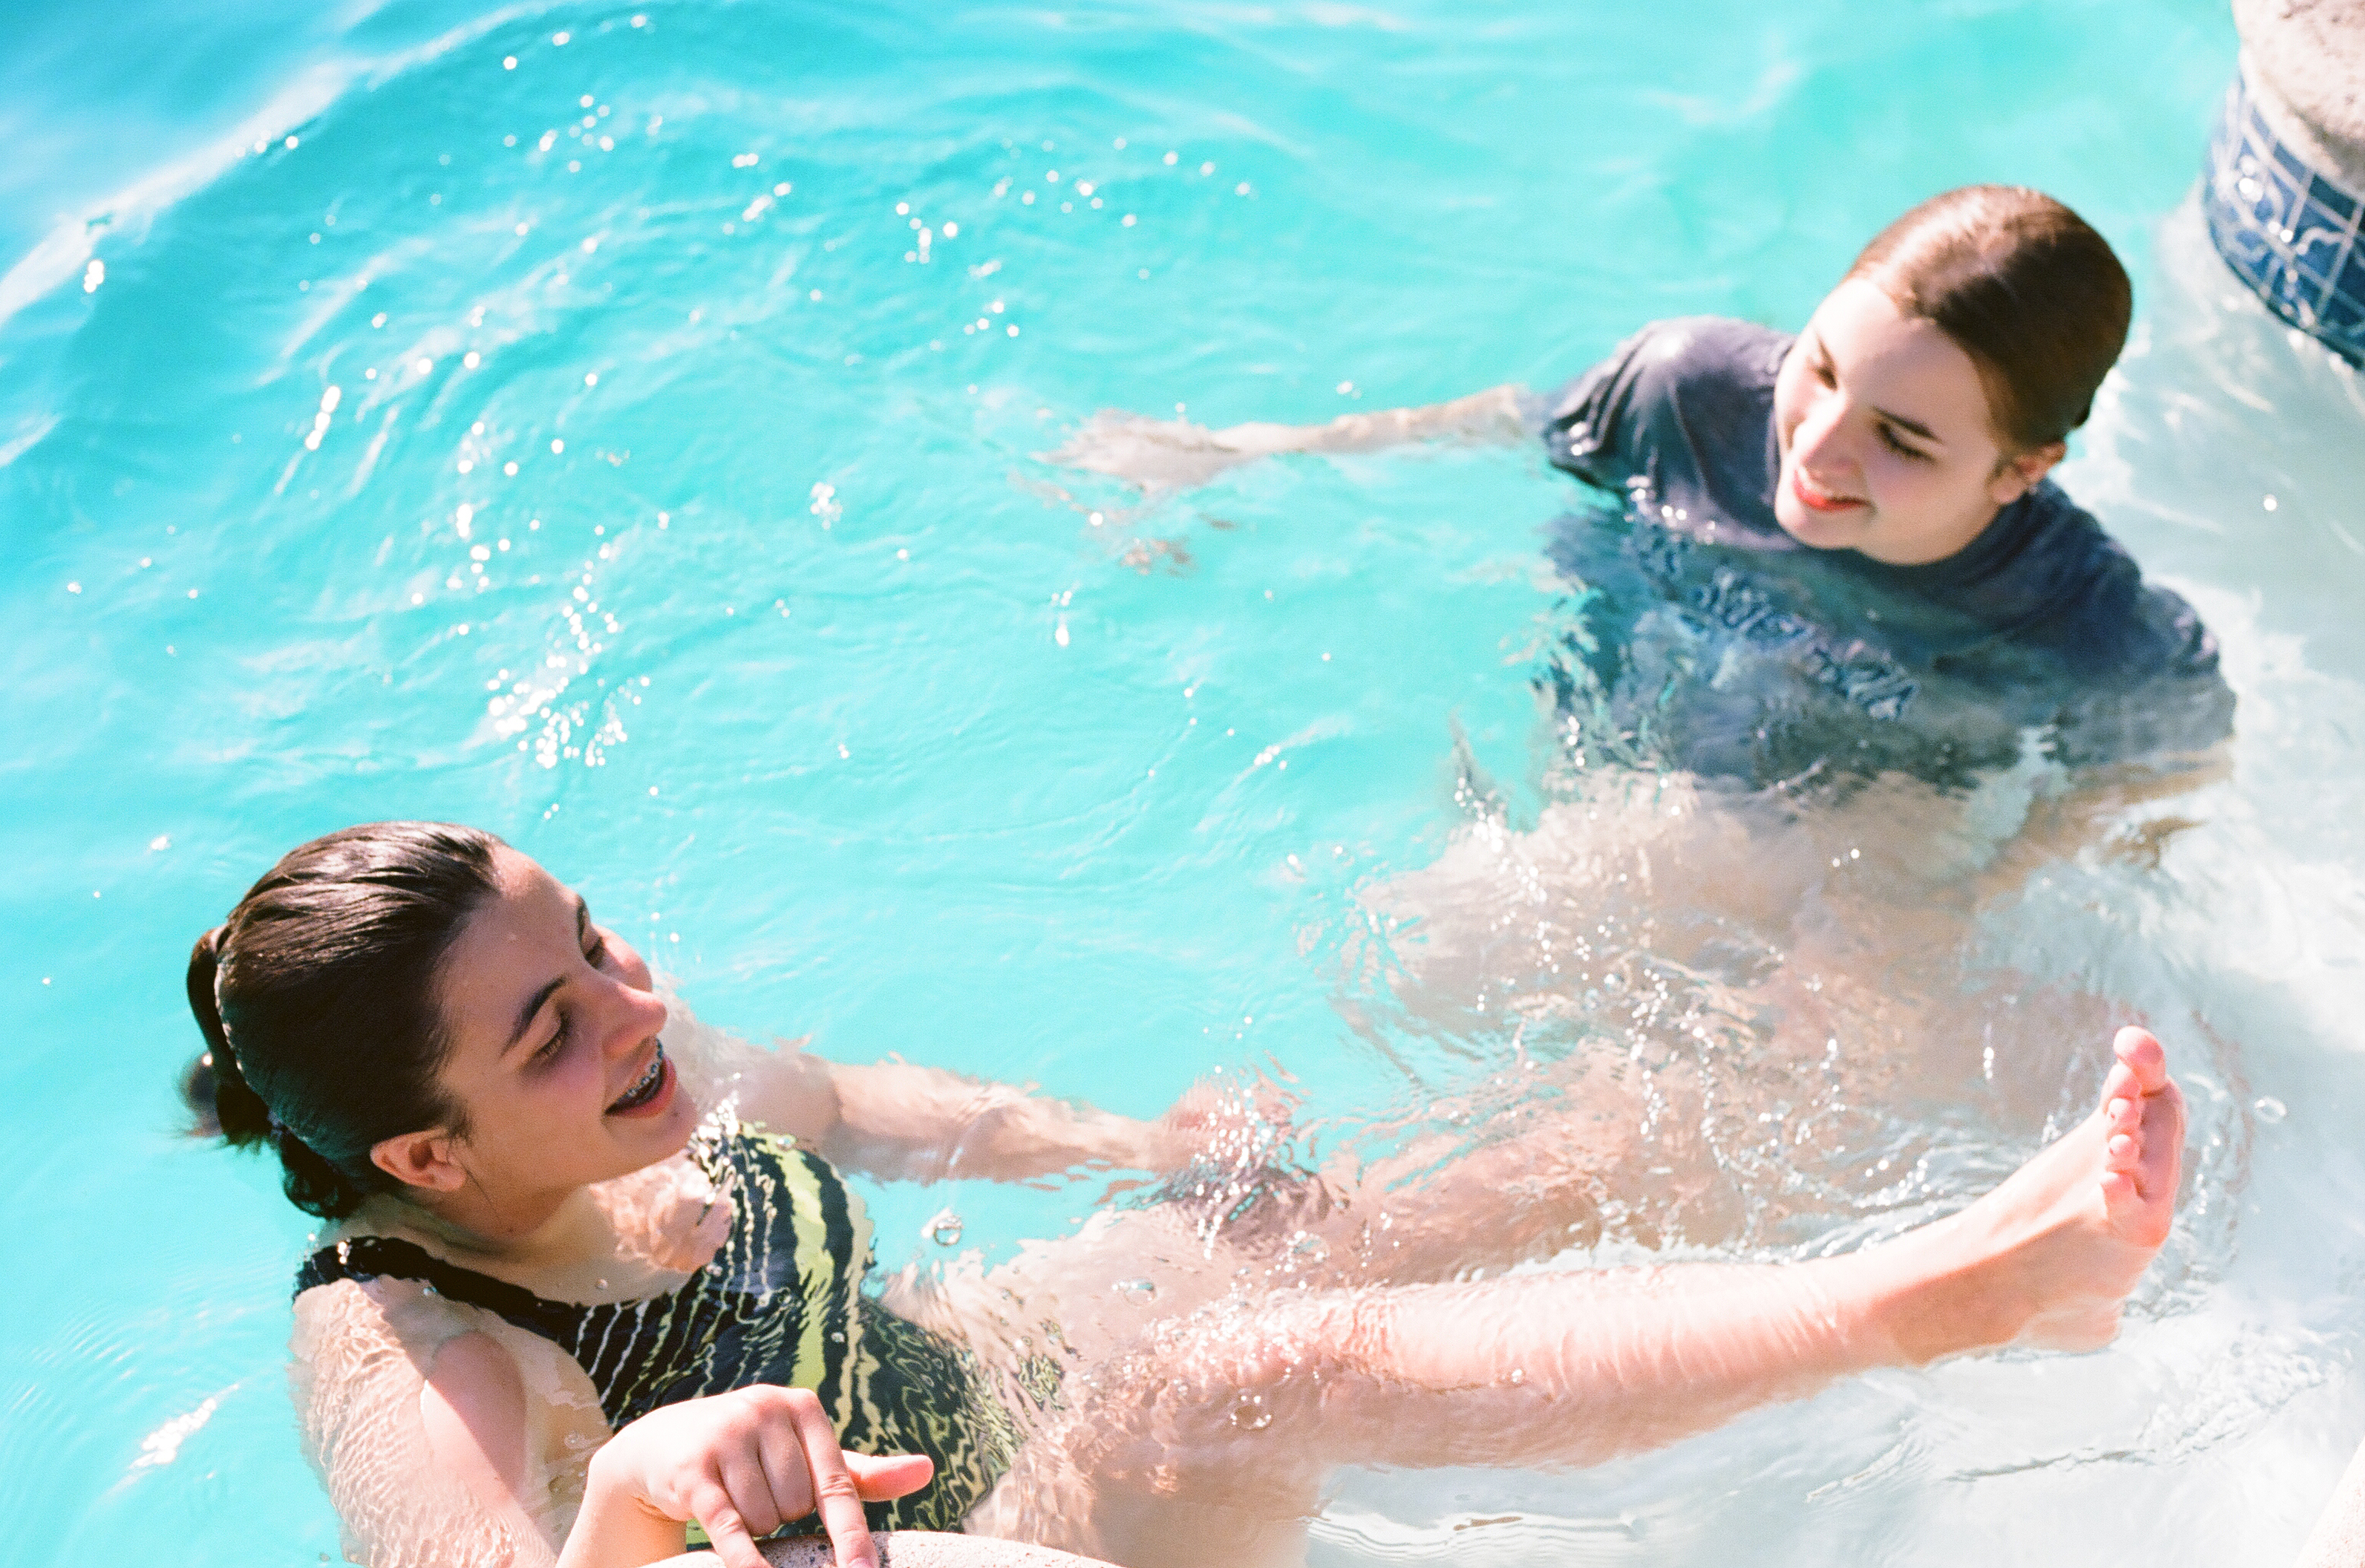 Teenagers swimming in pool